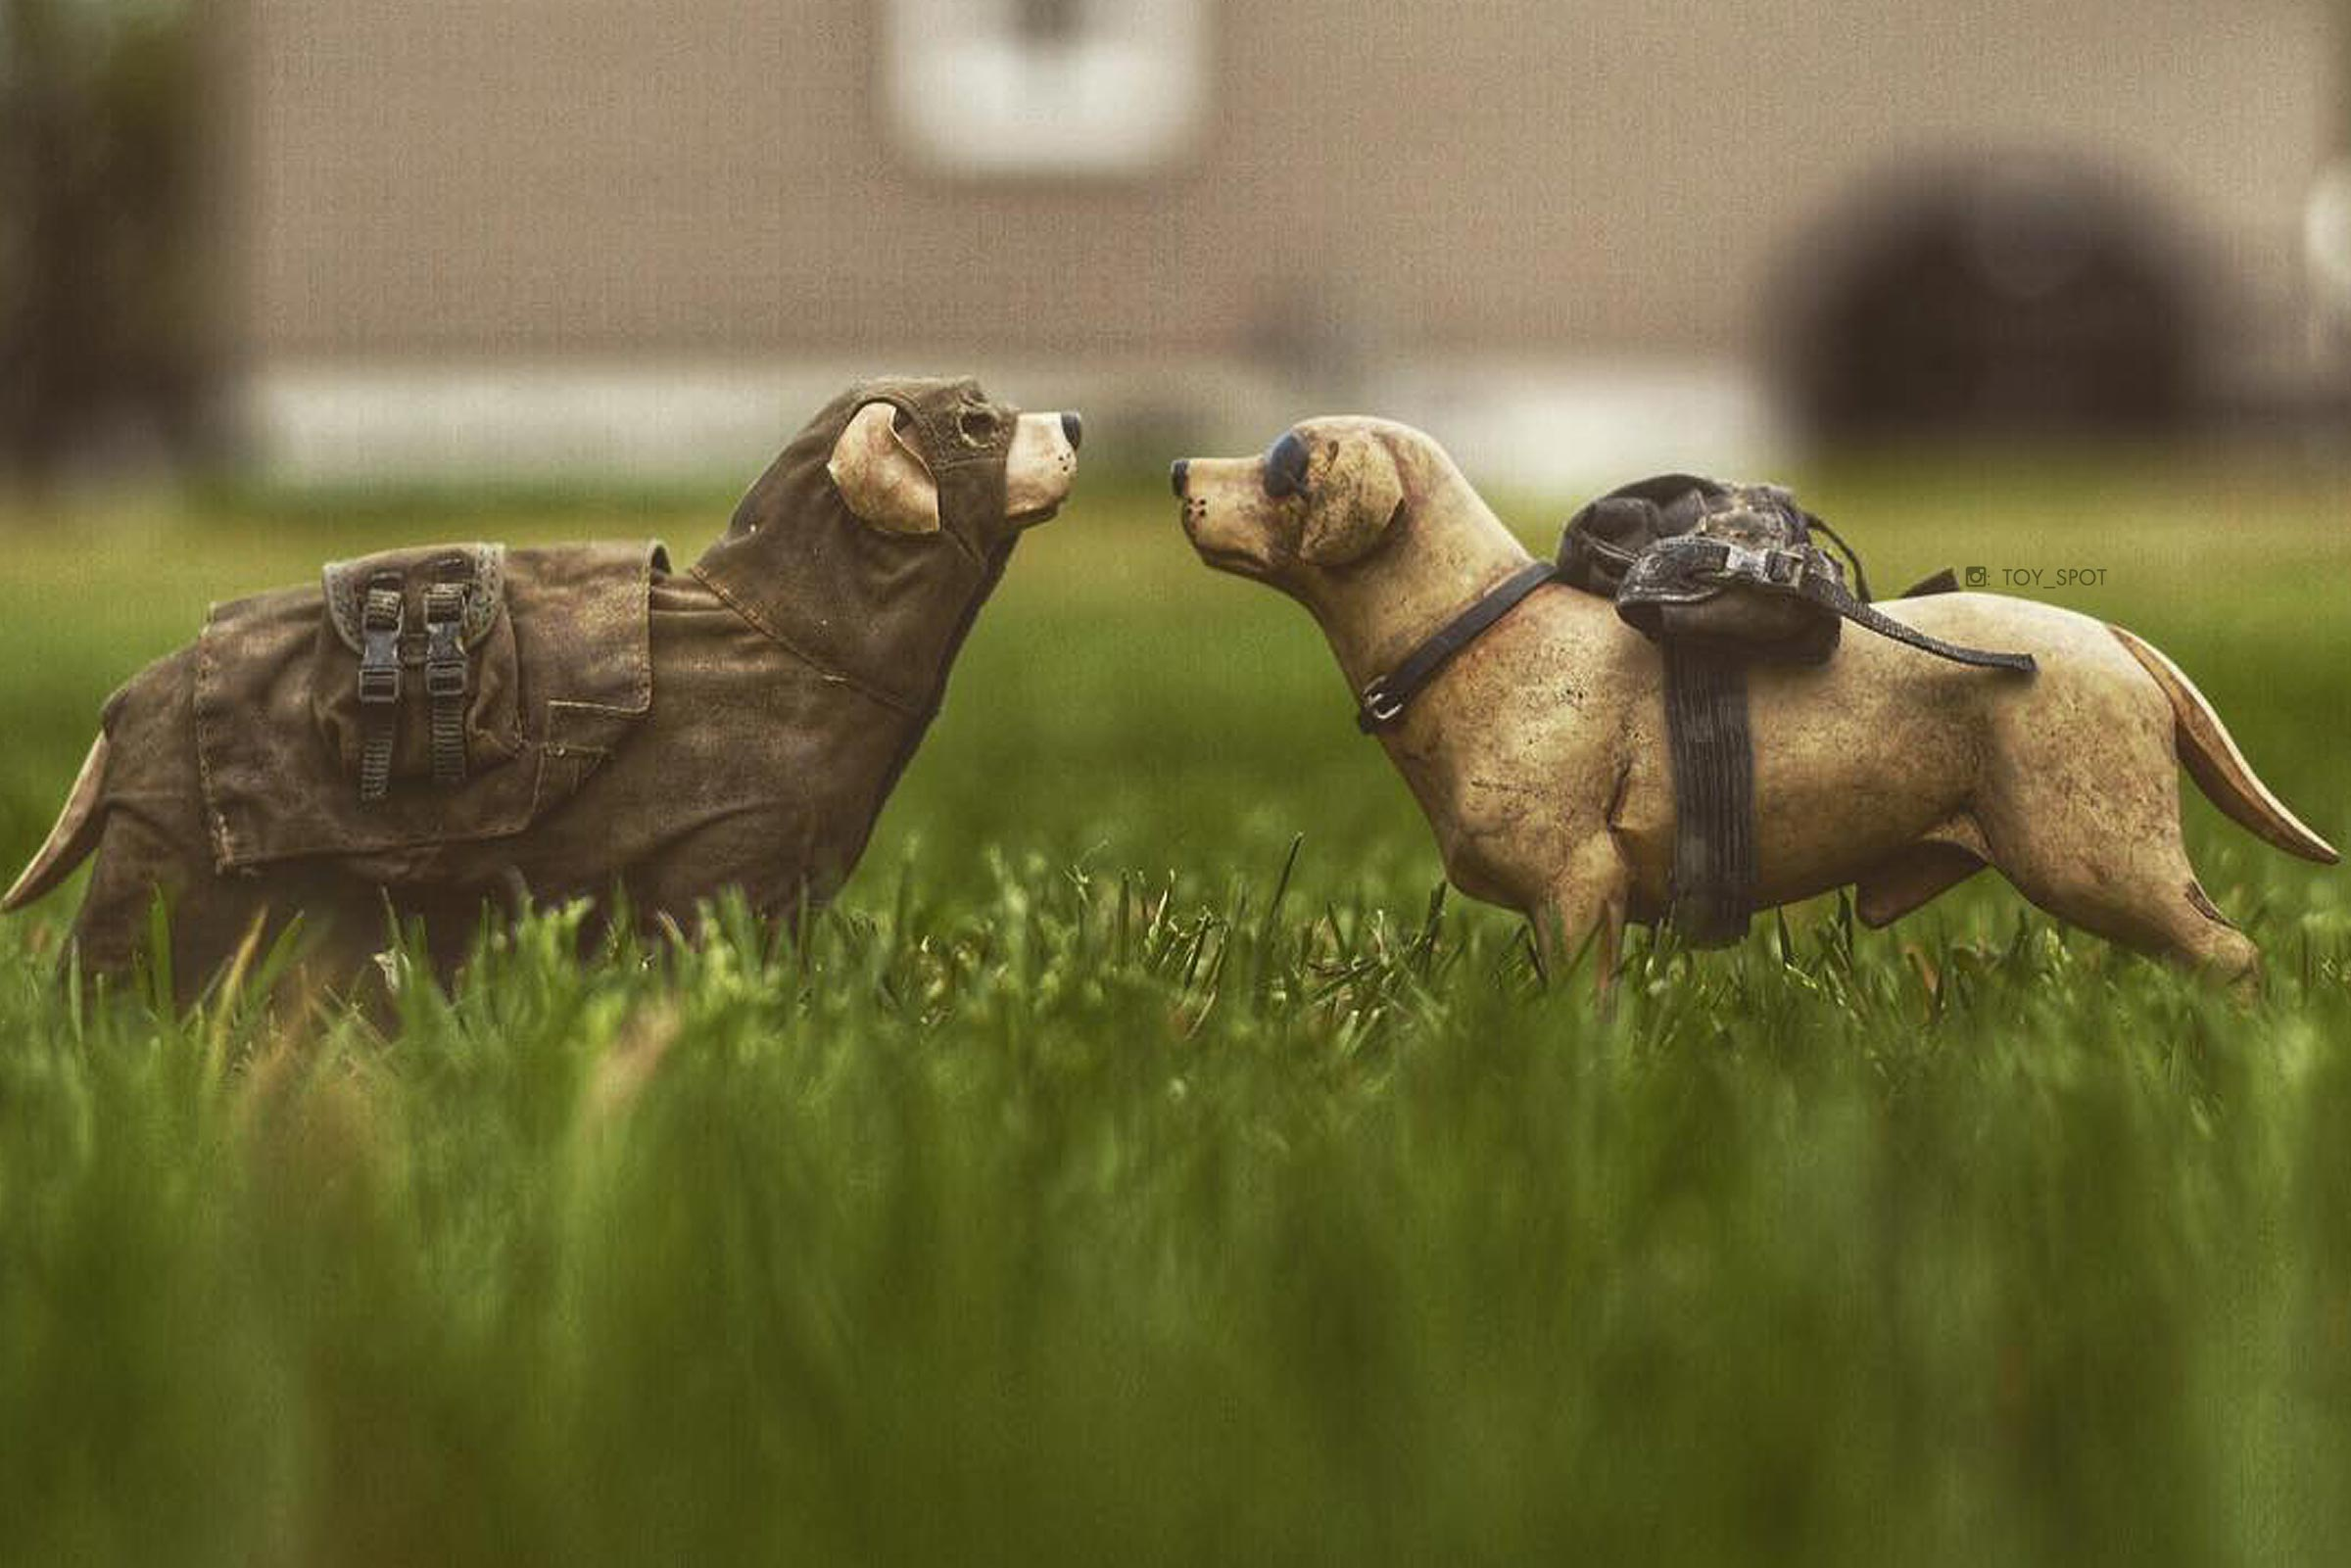 3a toy photography - dogs in the grass by toy_spot